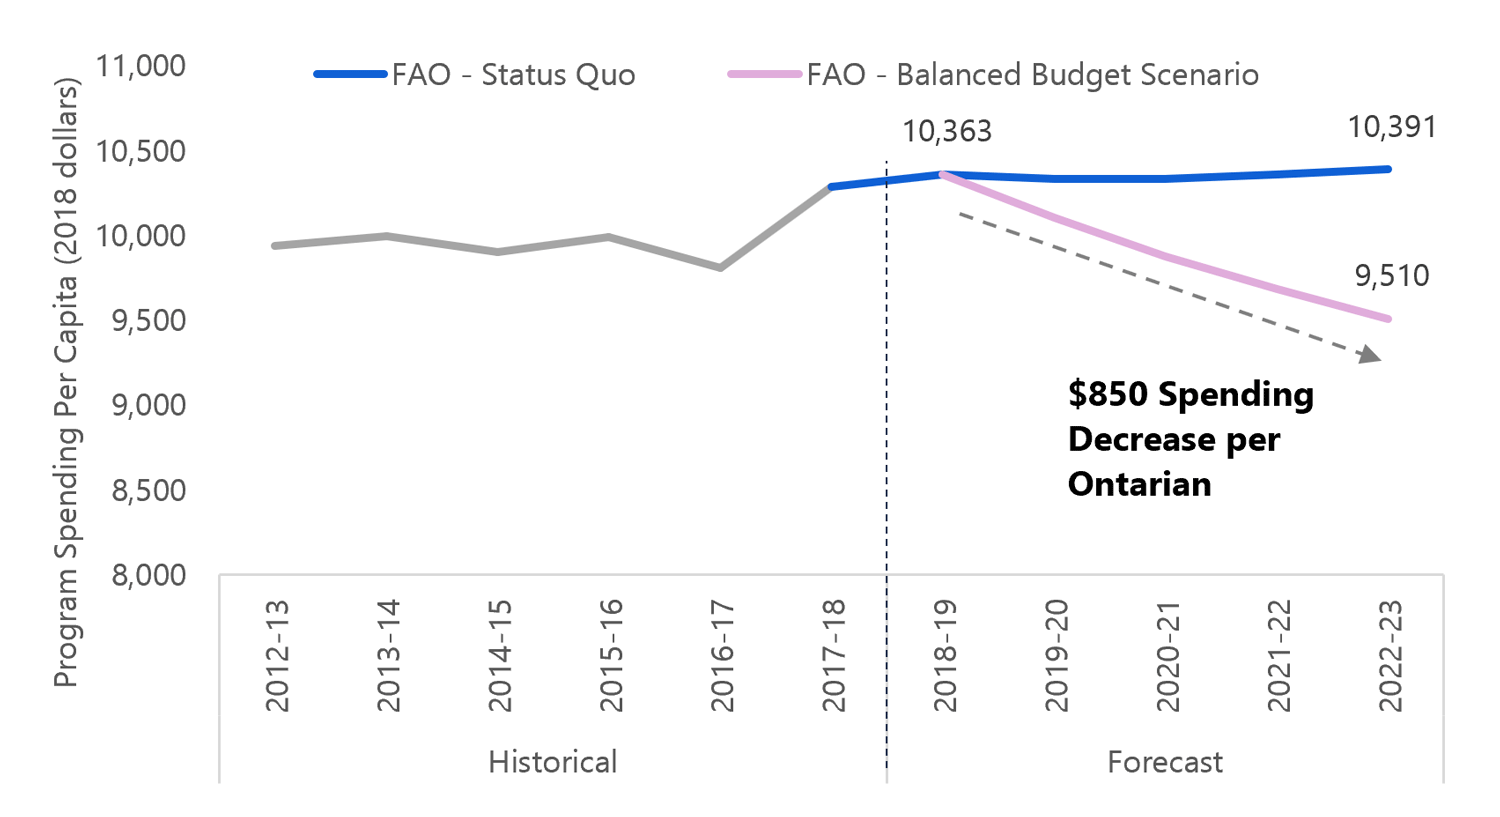 Balancing the Budget Without Raising Revenue Would Require Spending $850 Less Per Ontarian